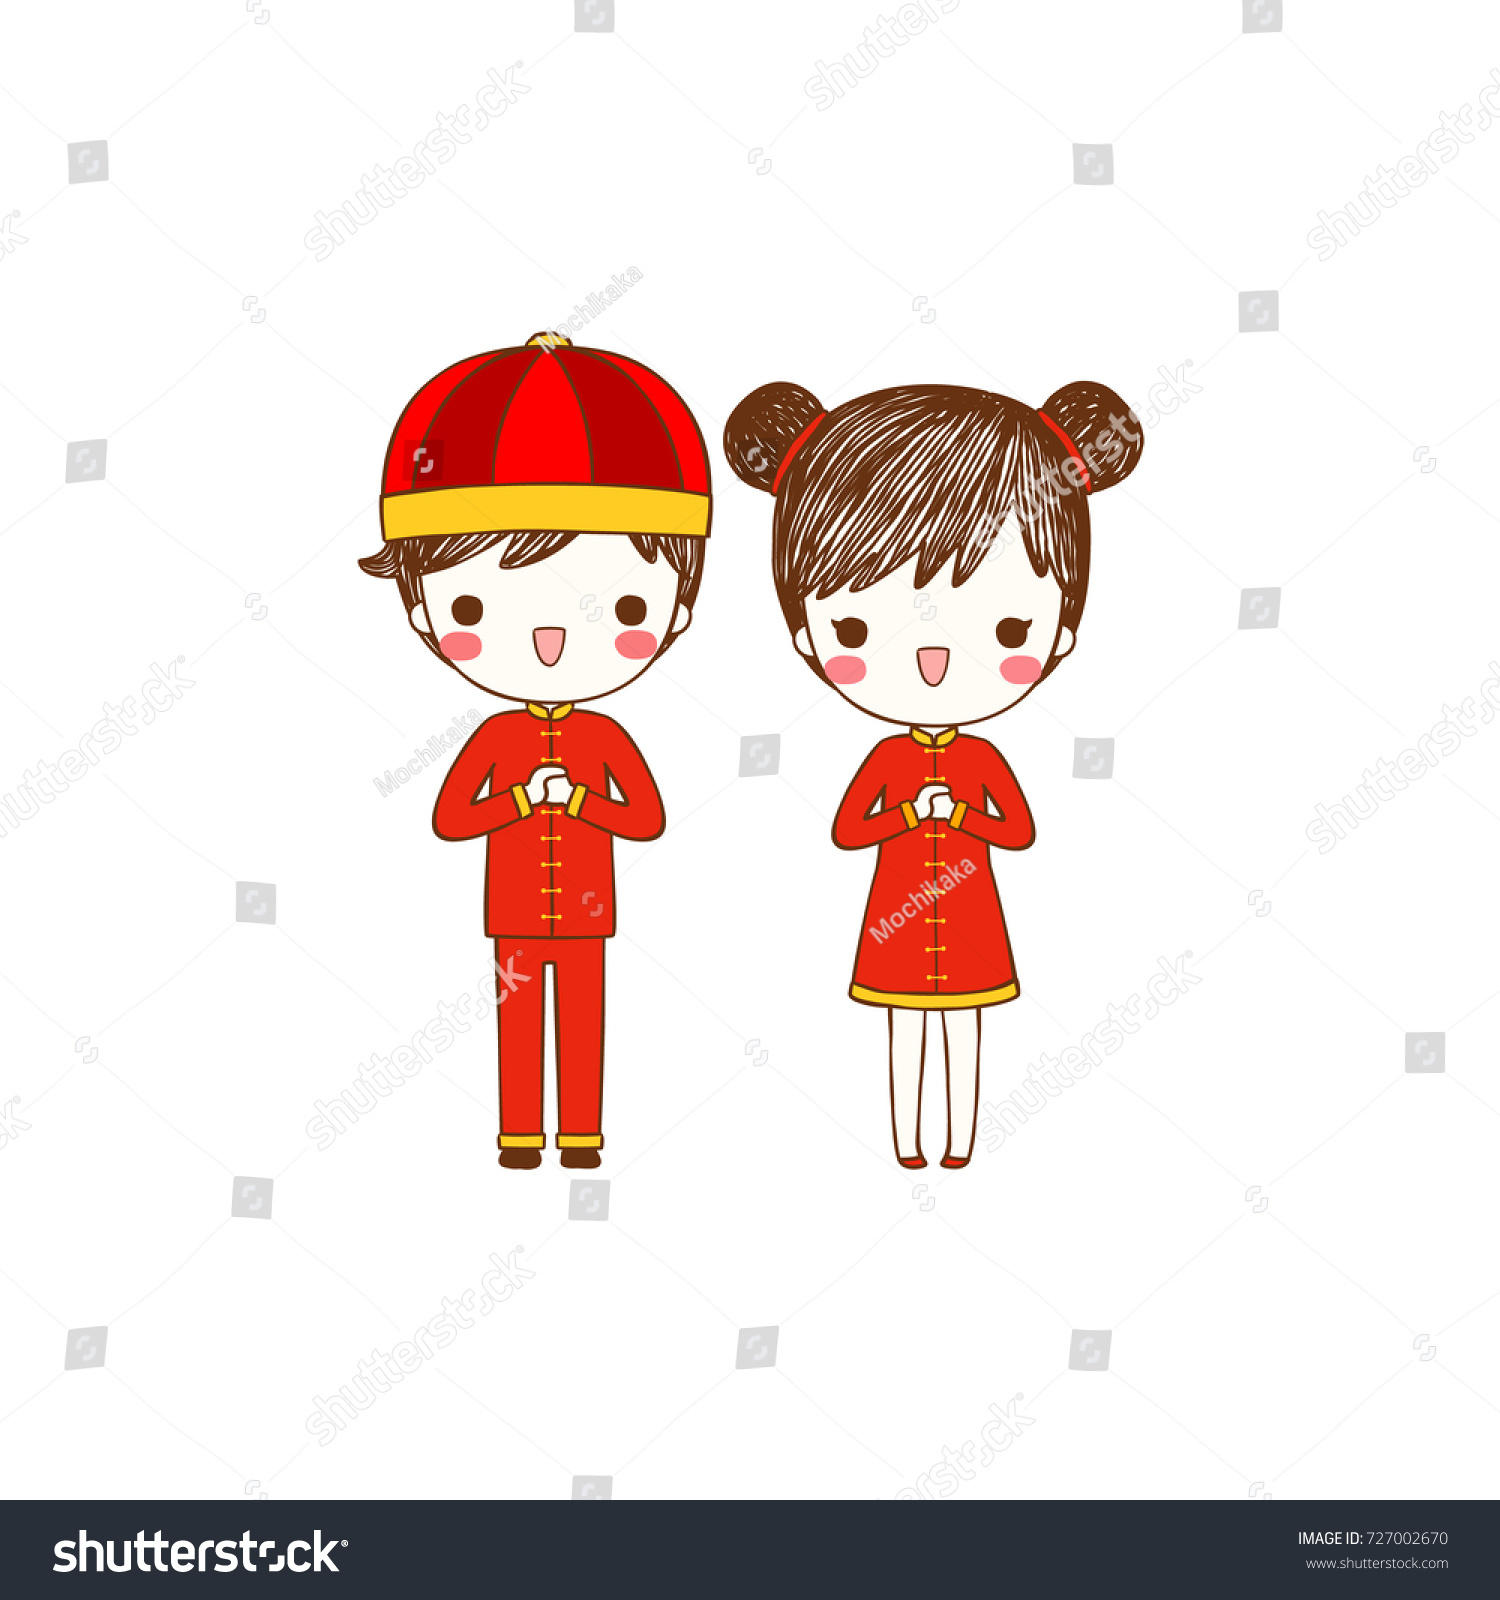 Happy Chinese New Year 2018 Cute Stock-Vektorgrafik (Lizenzfrei ...